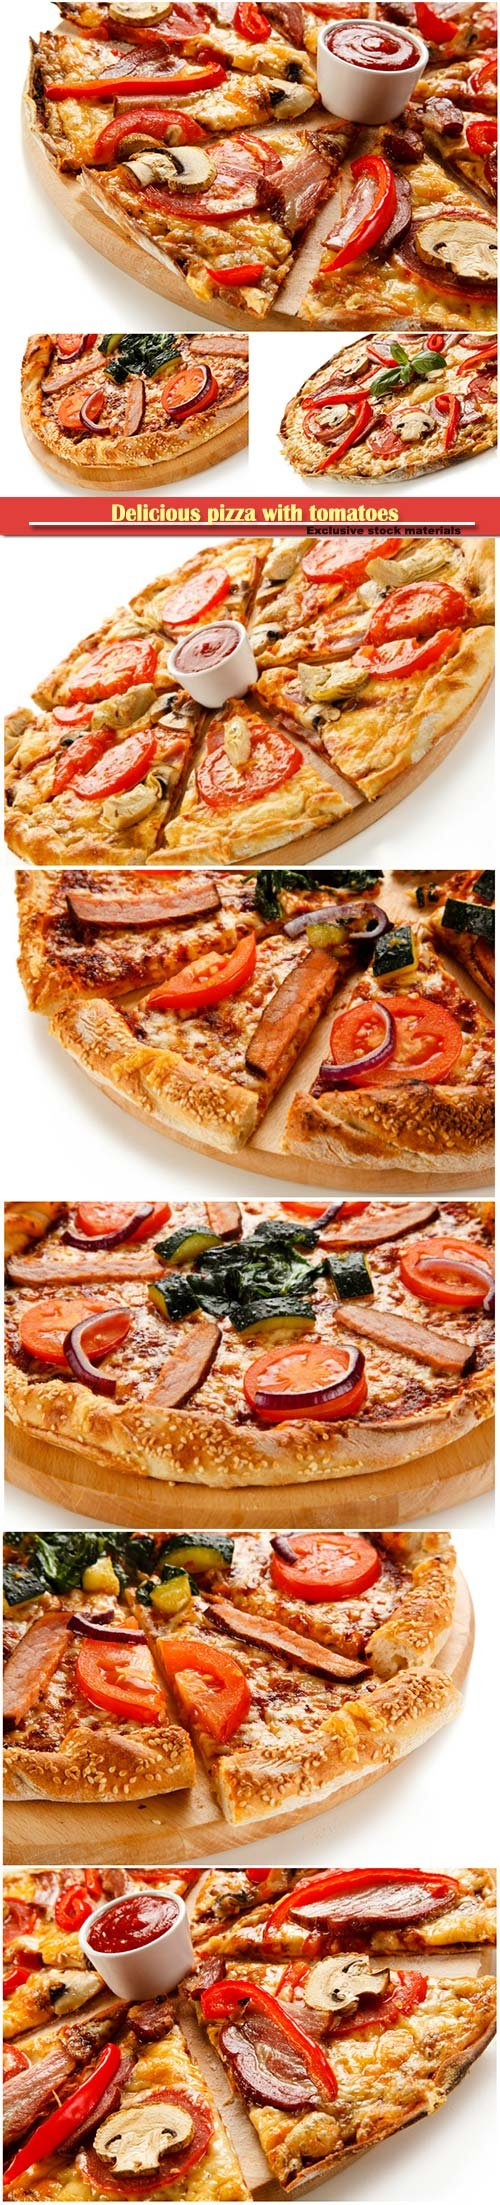 Delicious pizza with tomatoes, peppers and mushrooms